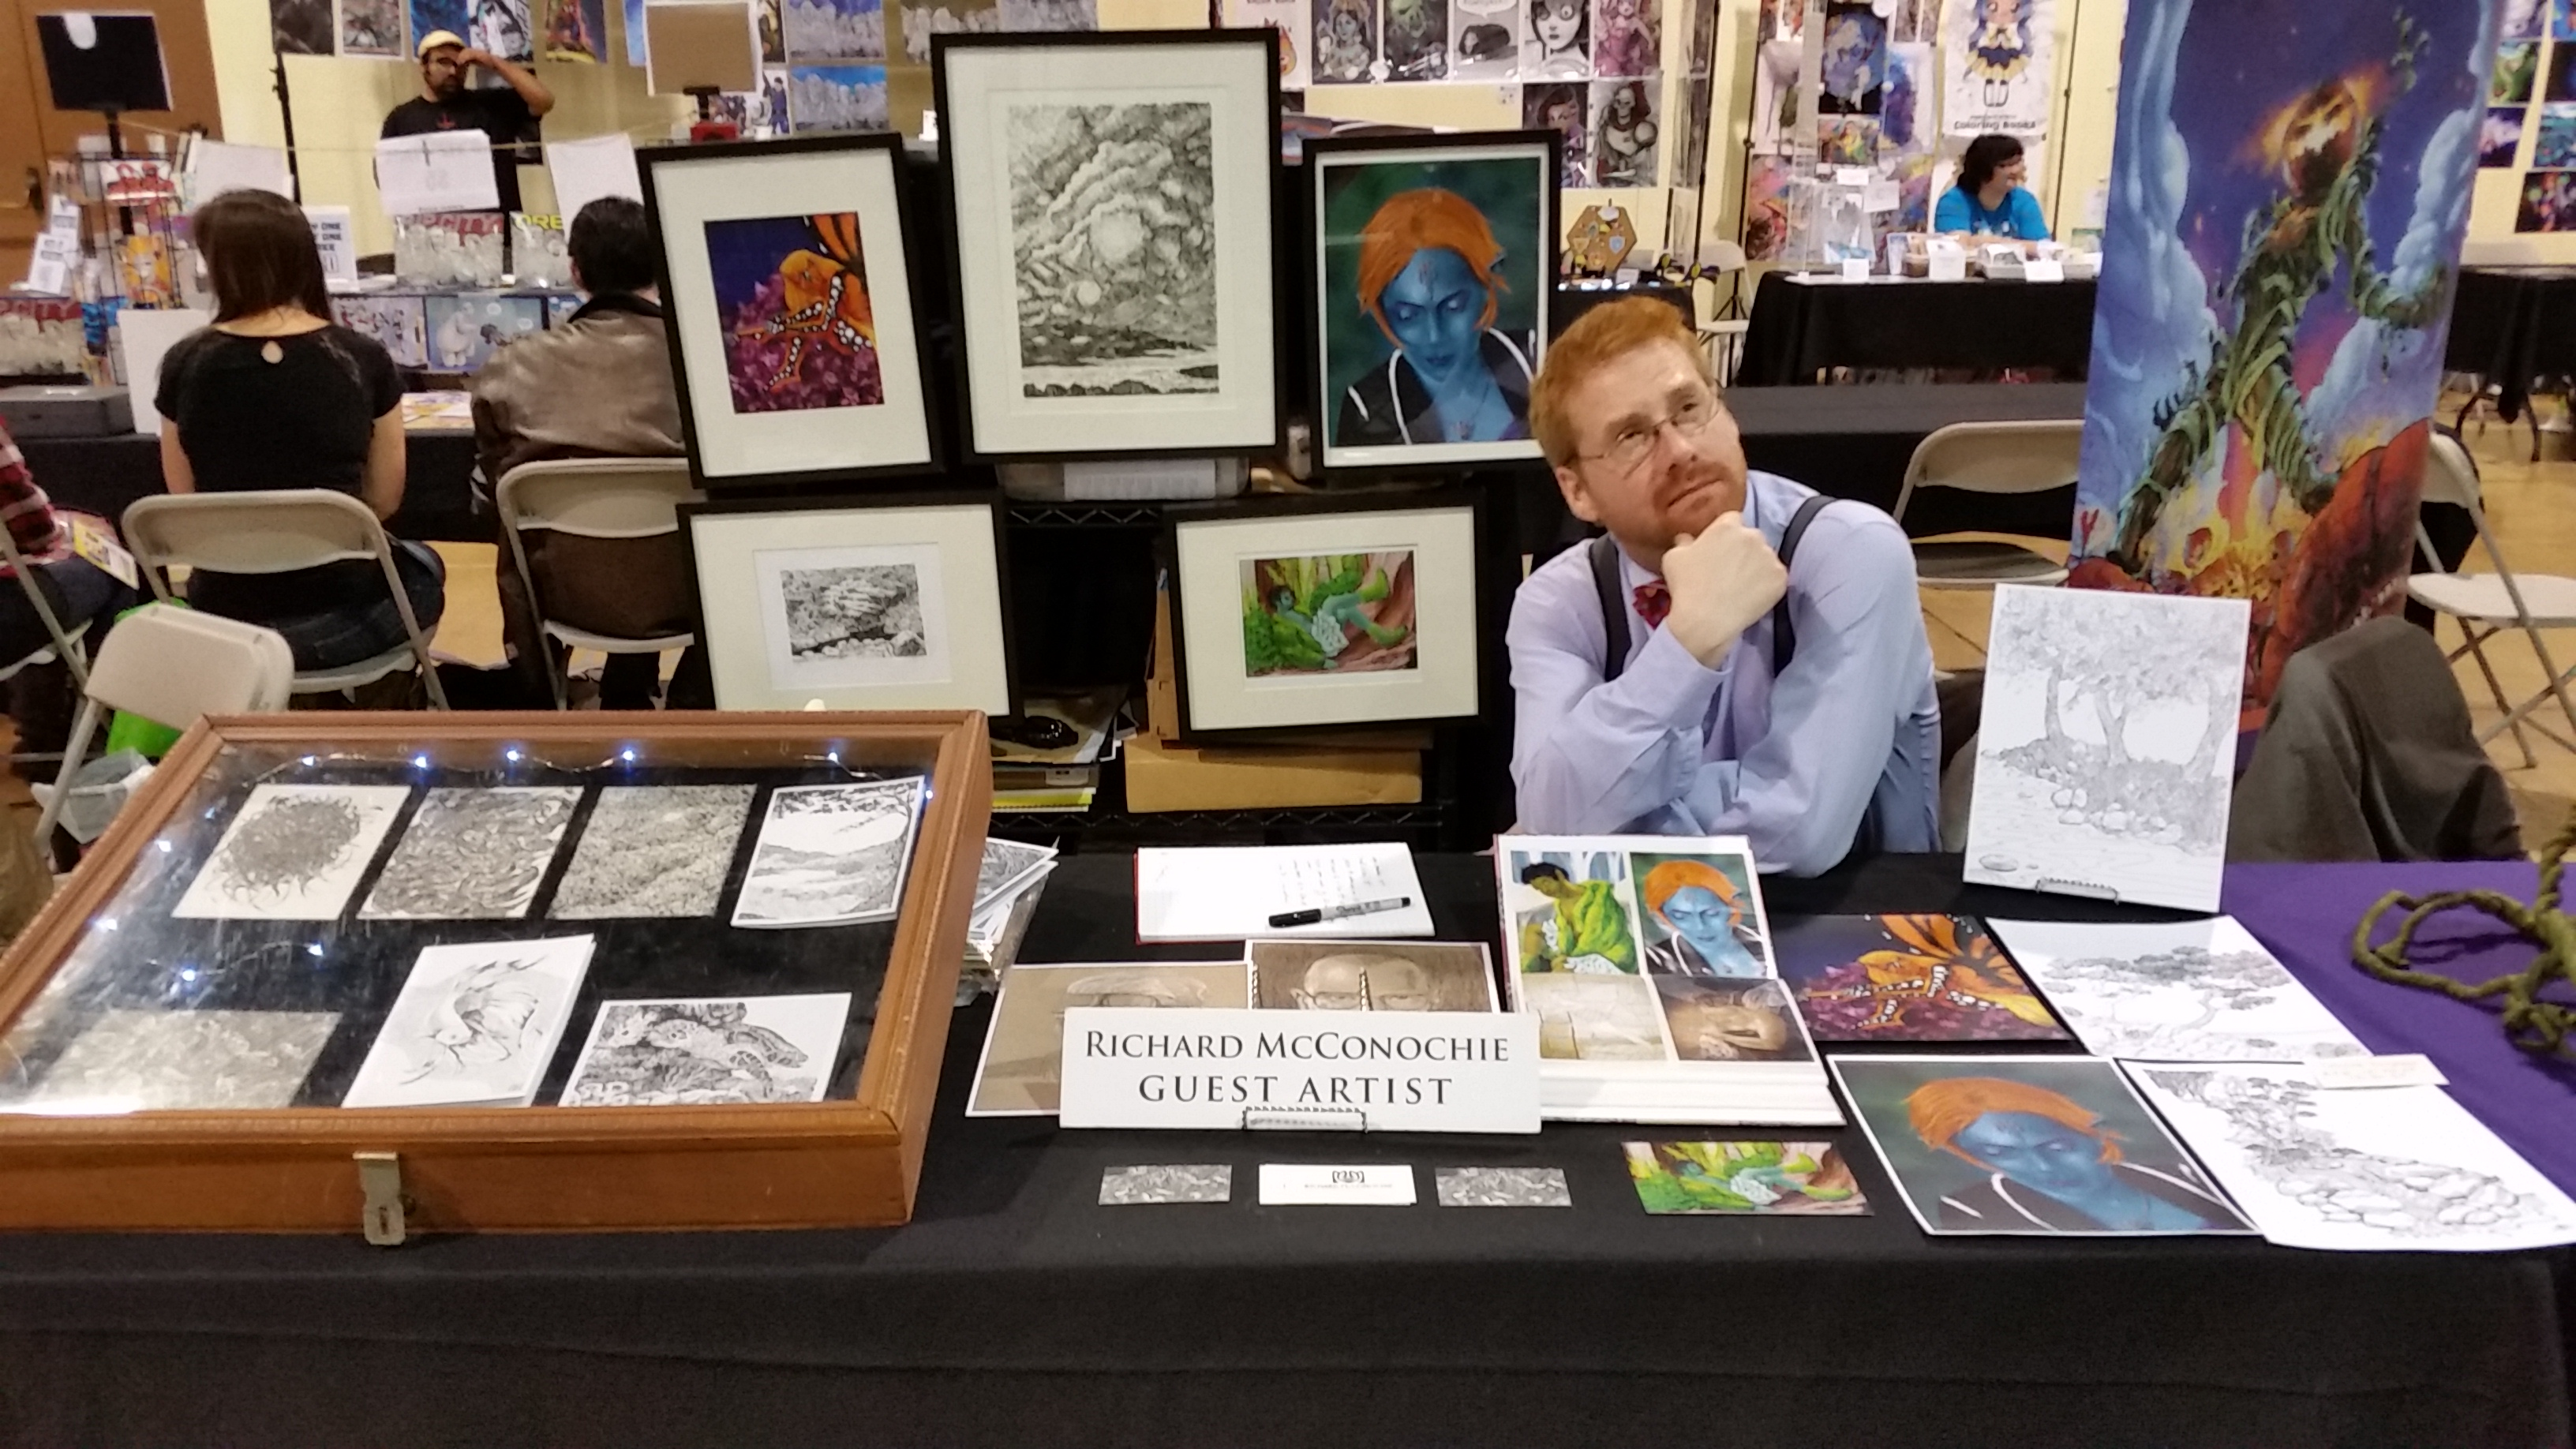 Richard McConochie at Eucon comicon